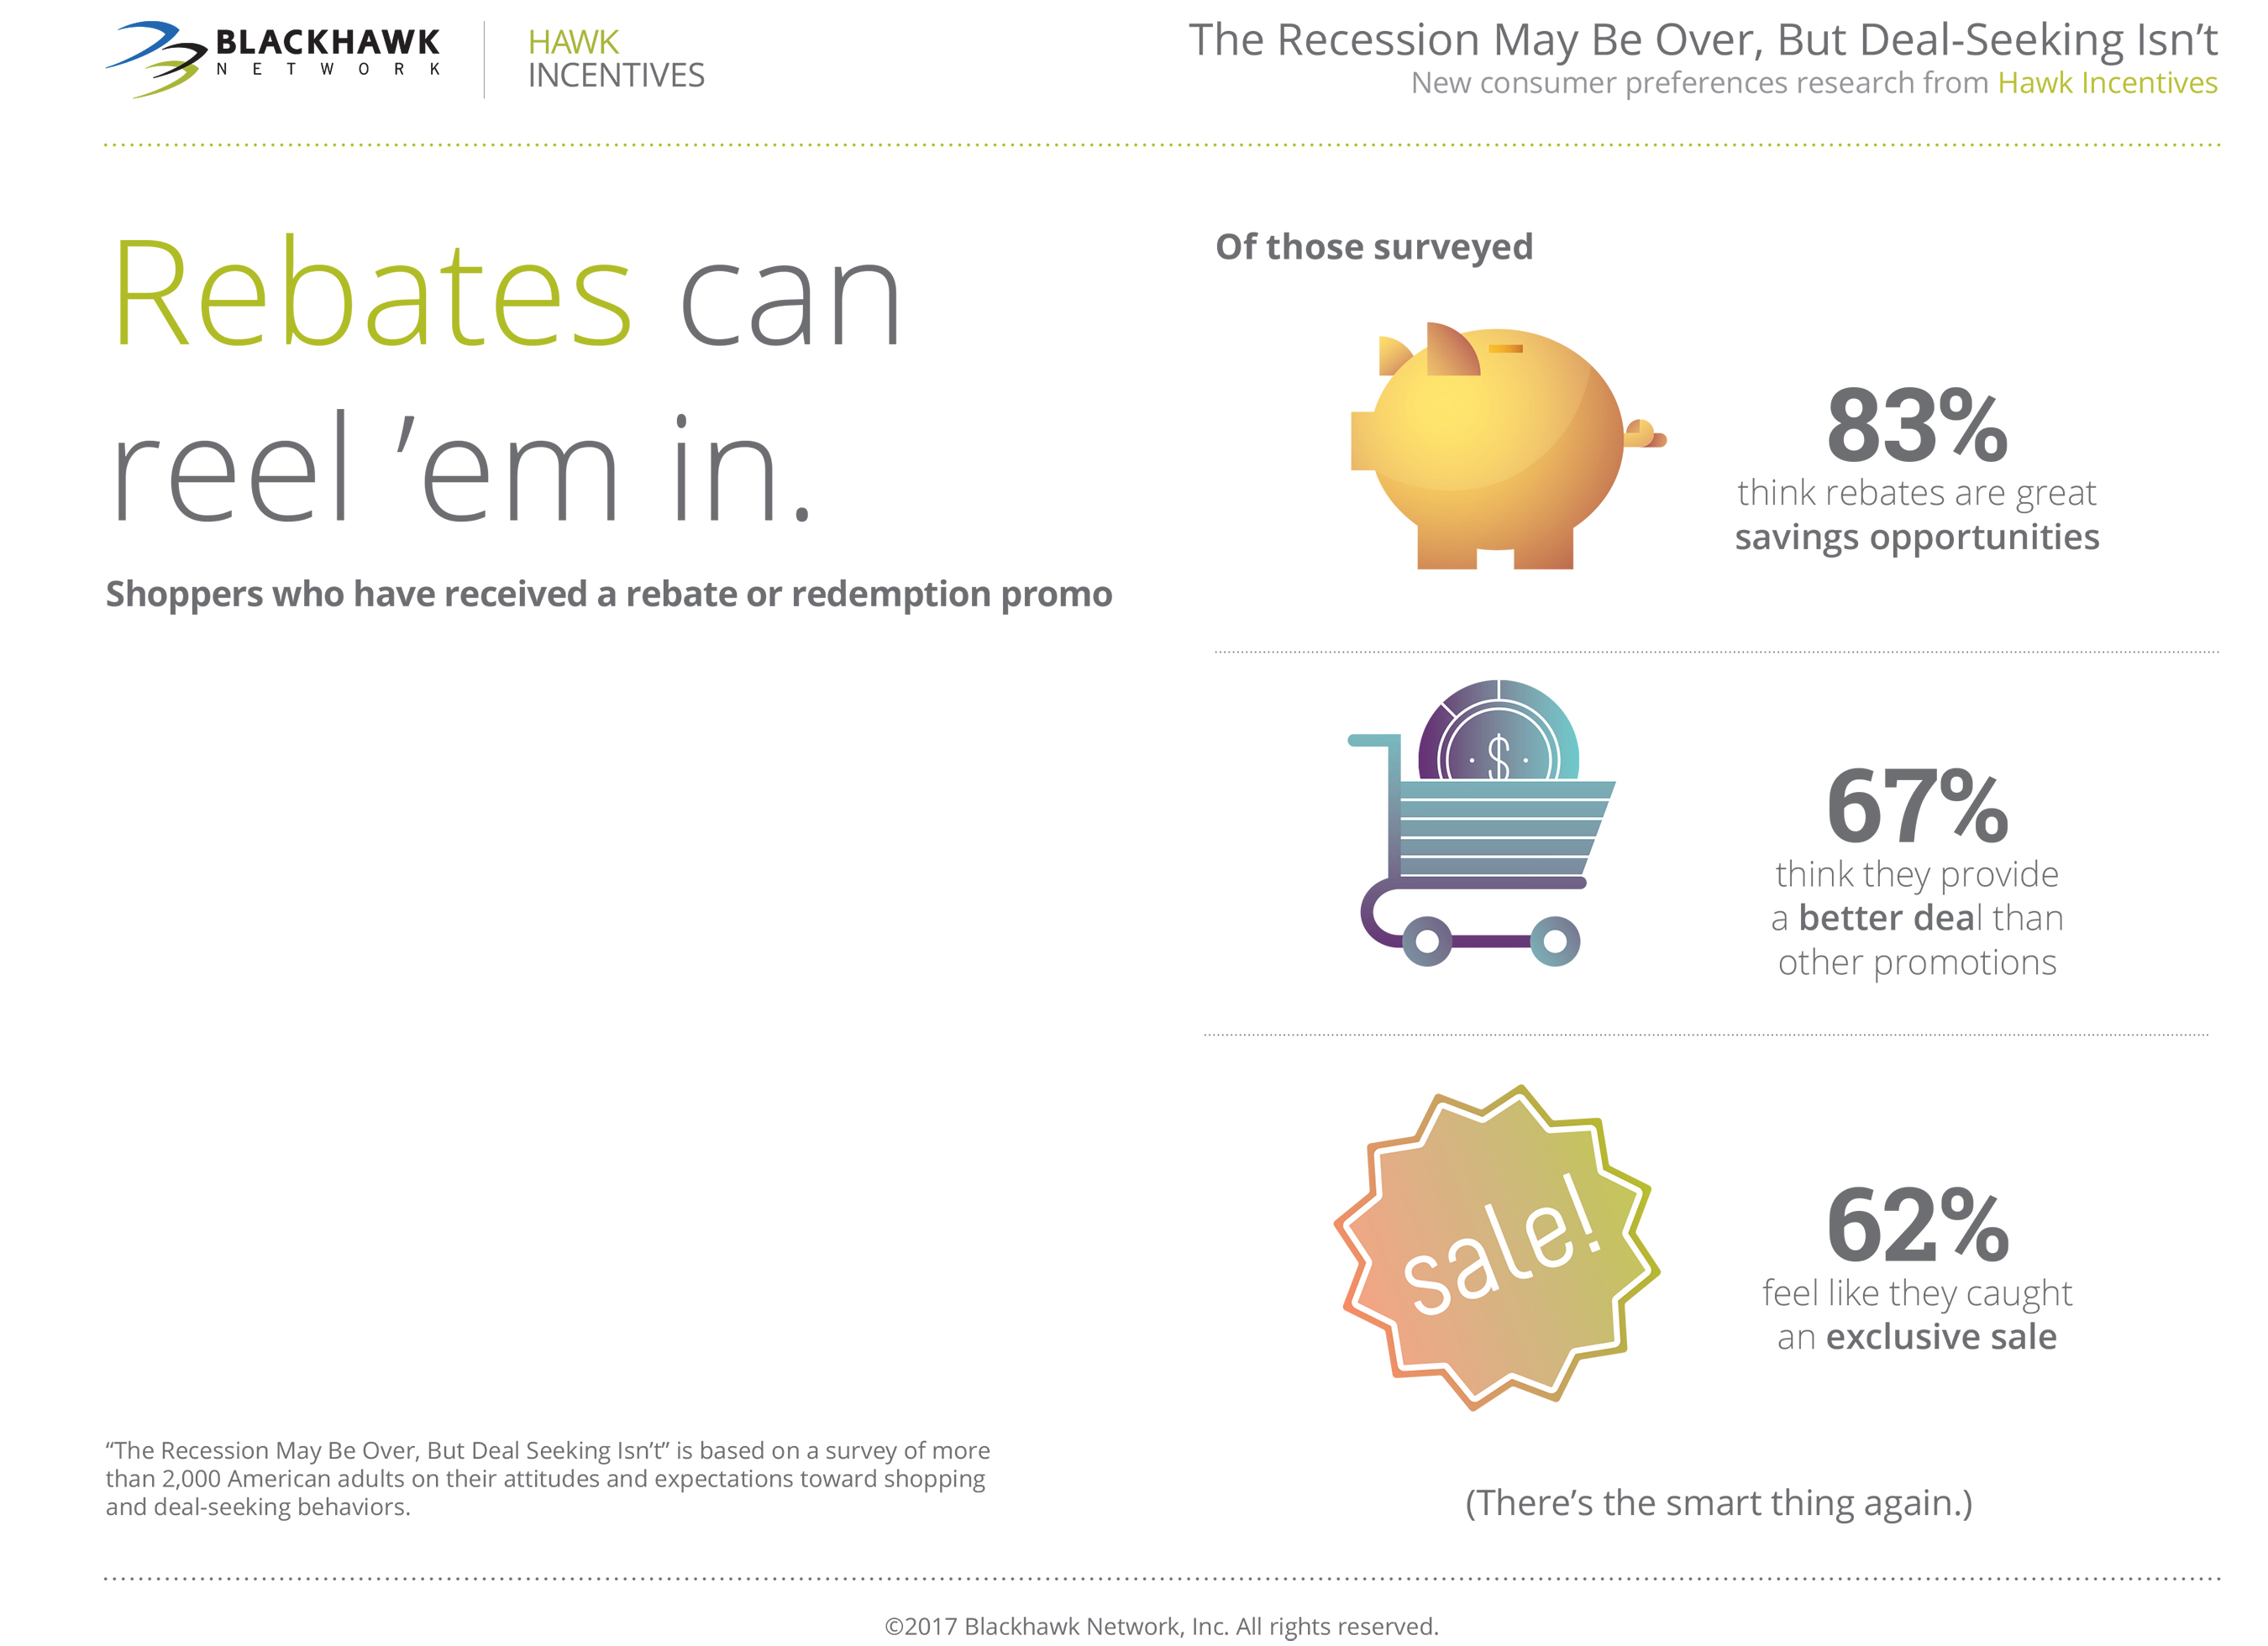 Rebates are effective tools when done right.